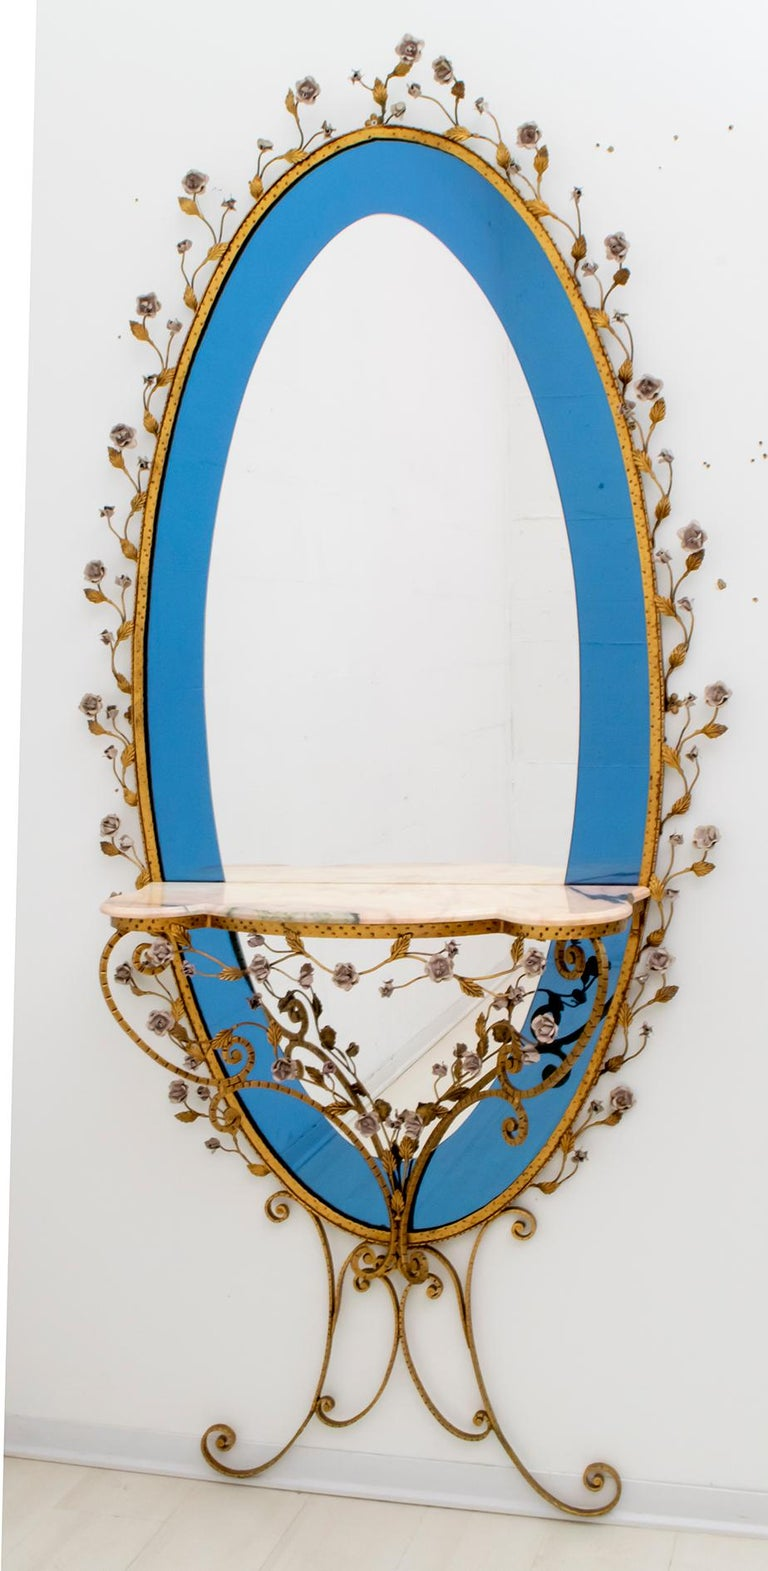 Beautiful entrance mirror with console, sophisticated, elegant, designed by Pier Luigi Colli, Italy, Turin 1950 The structure is in wrought iron, the handmade flowers in wrought iron, the mirror is in two colors, cobalt blue and transparent, the